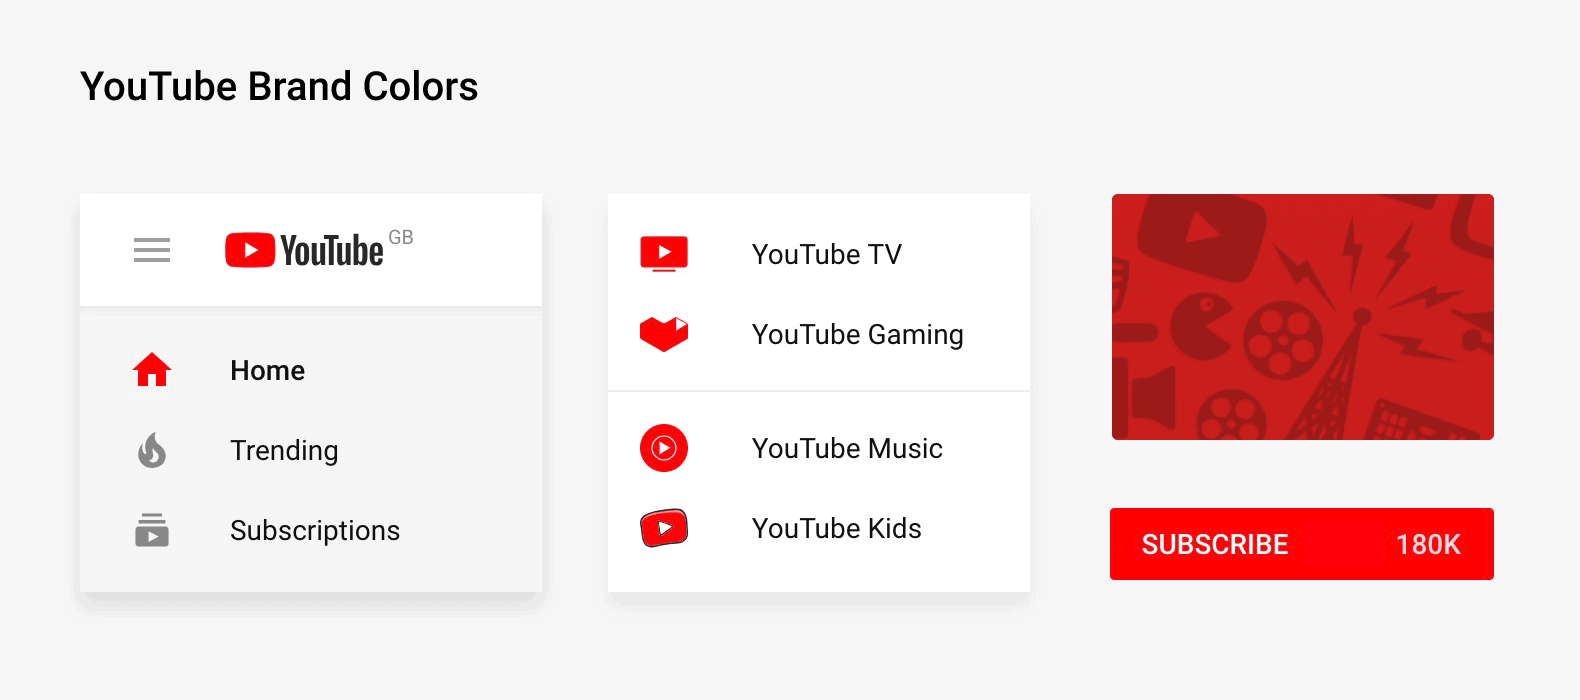 YouTube brand colors